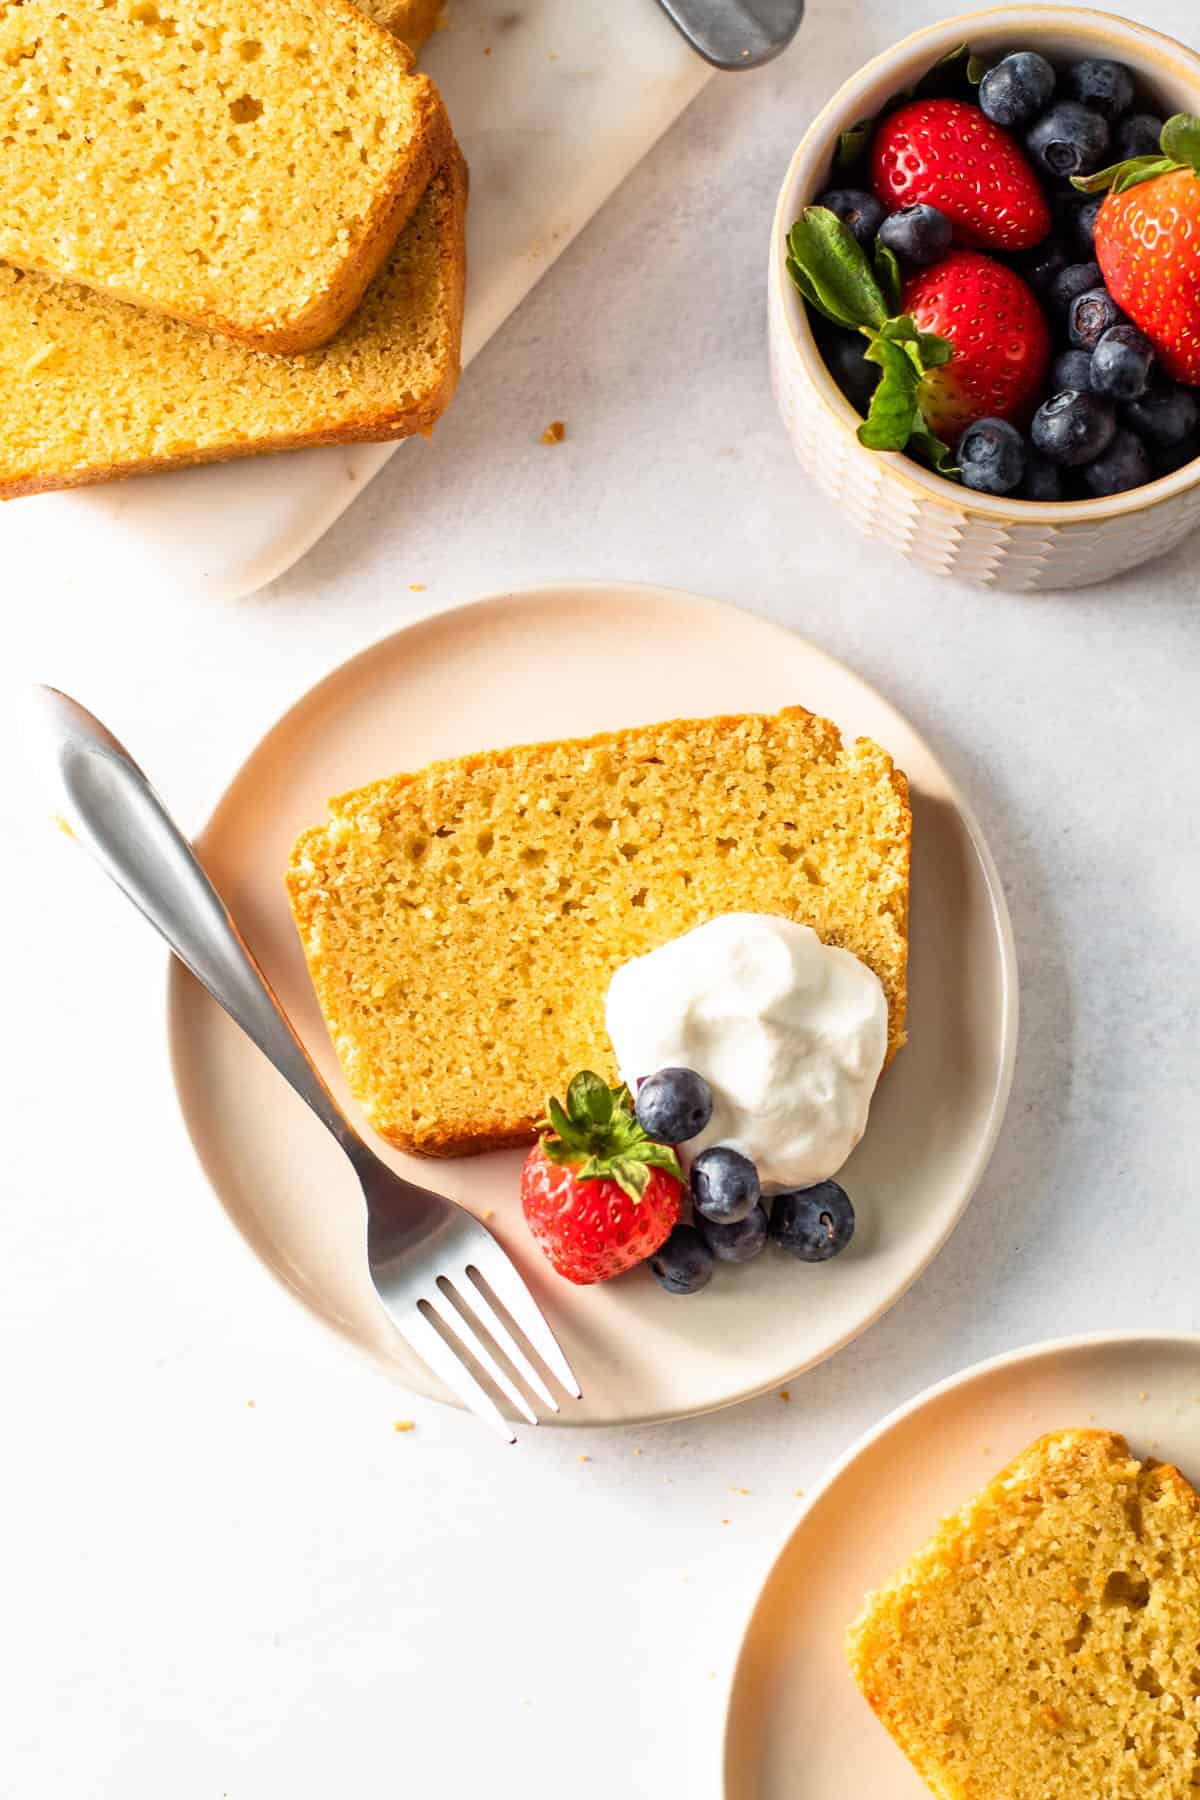 Gluten-free pound cake on a plate with whipped cream and berries.